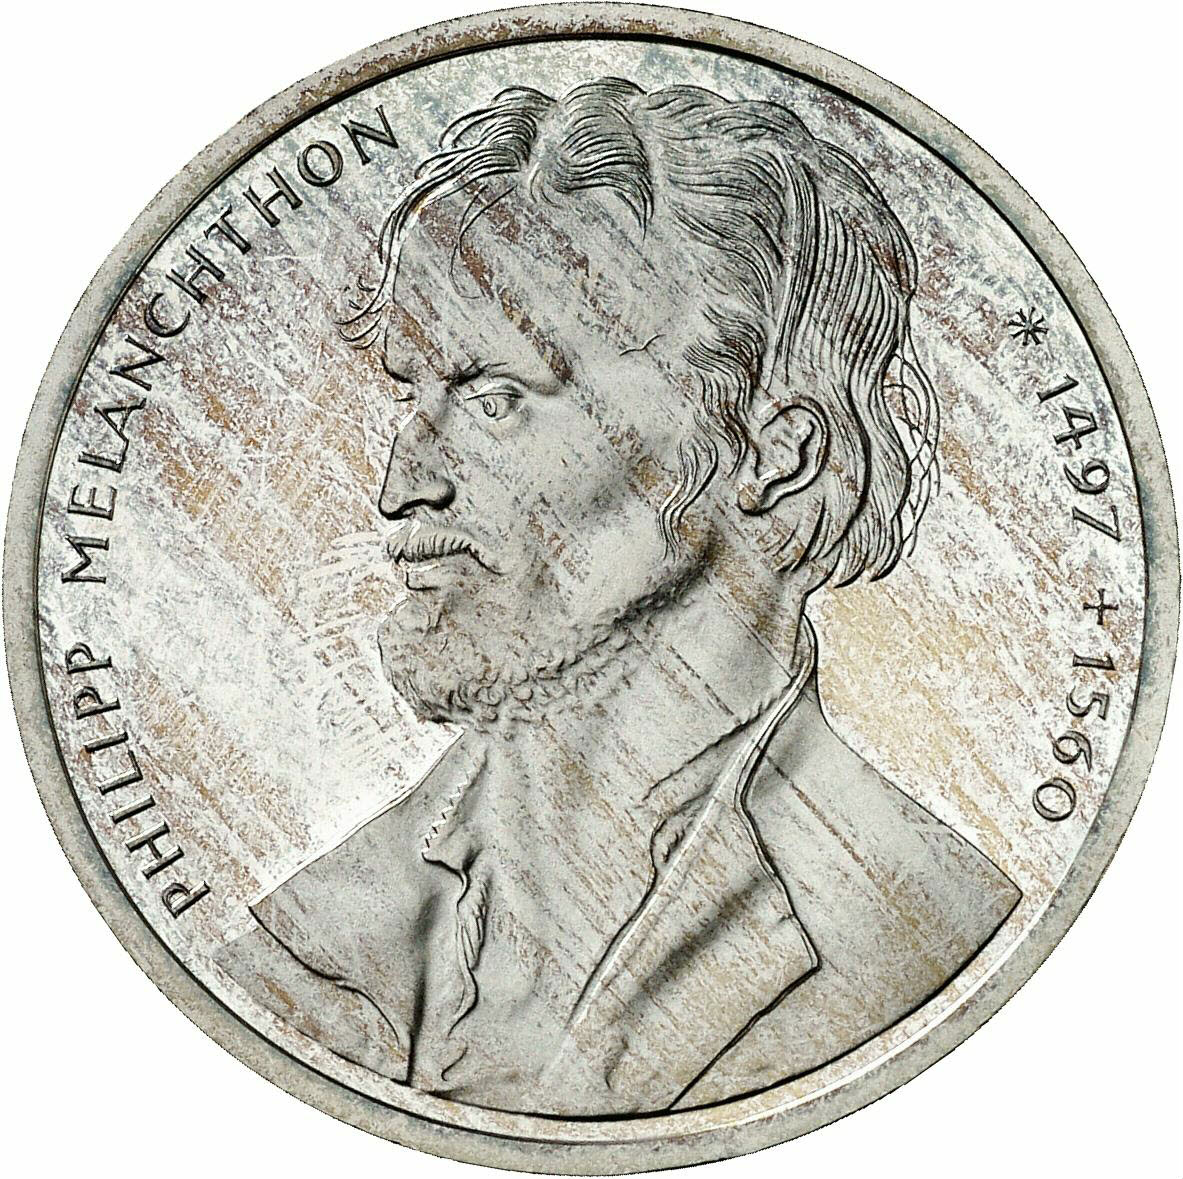 DE 10 Deutsche Mark 1997 G